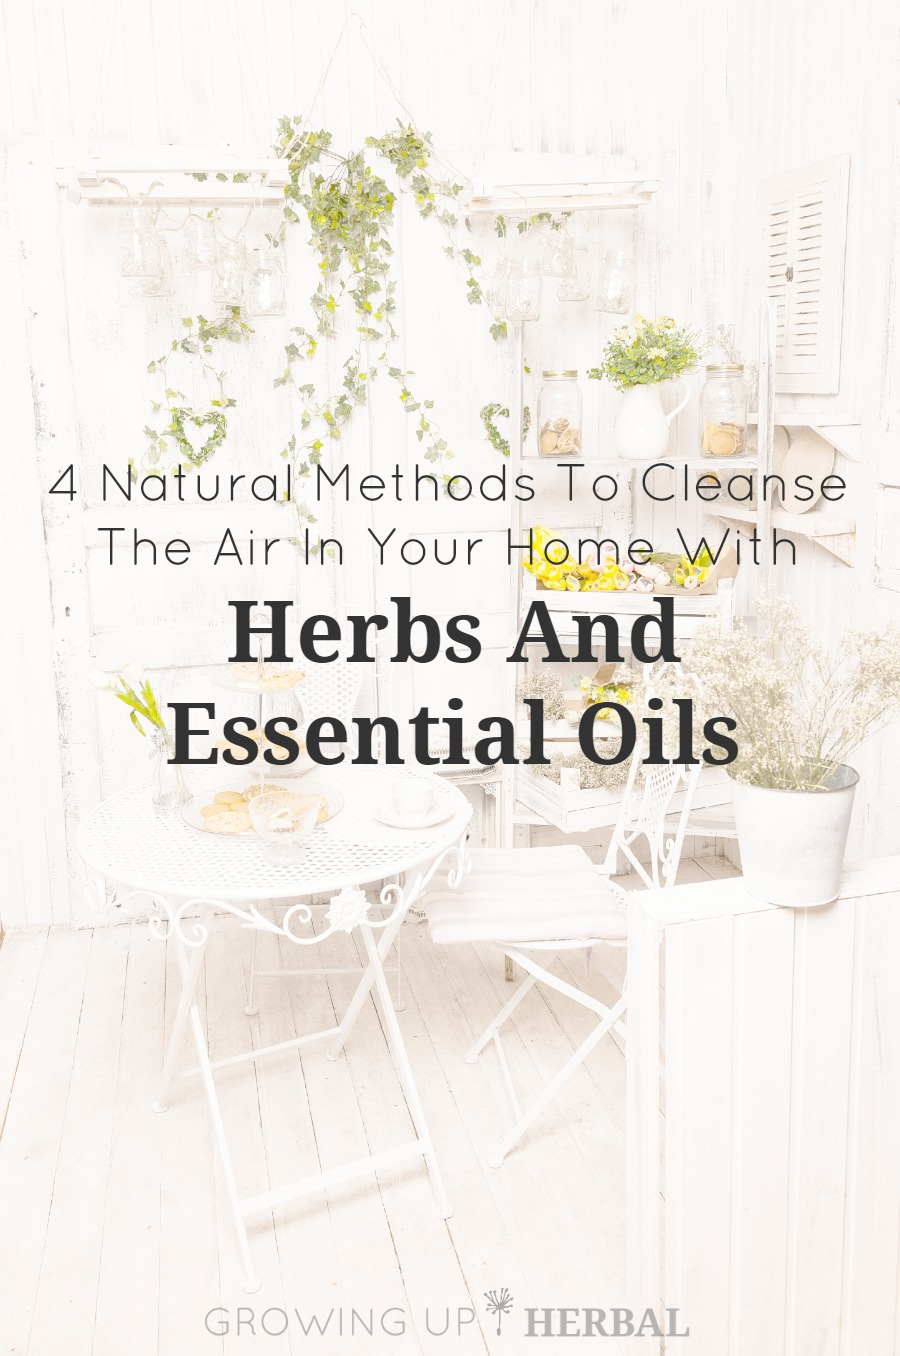 4 Natural Methods To Cleanse The Air In Your Home With